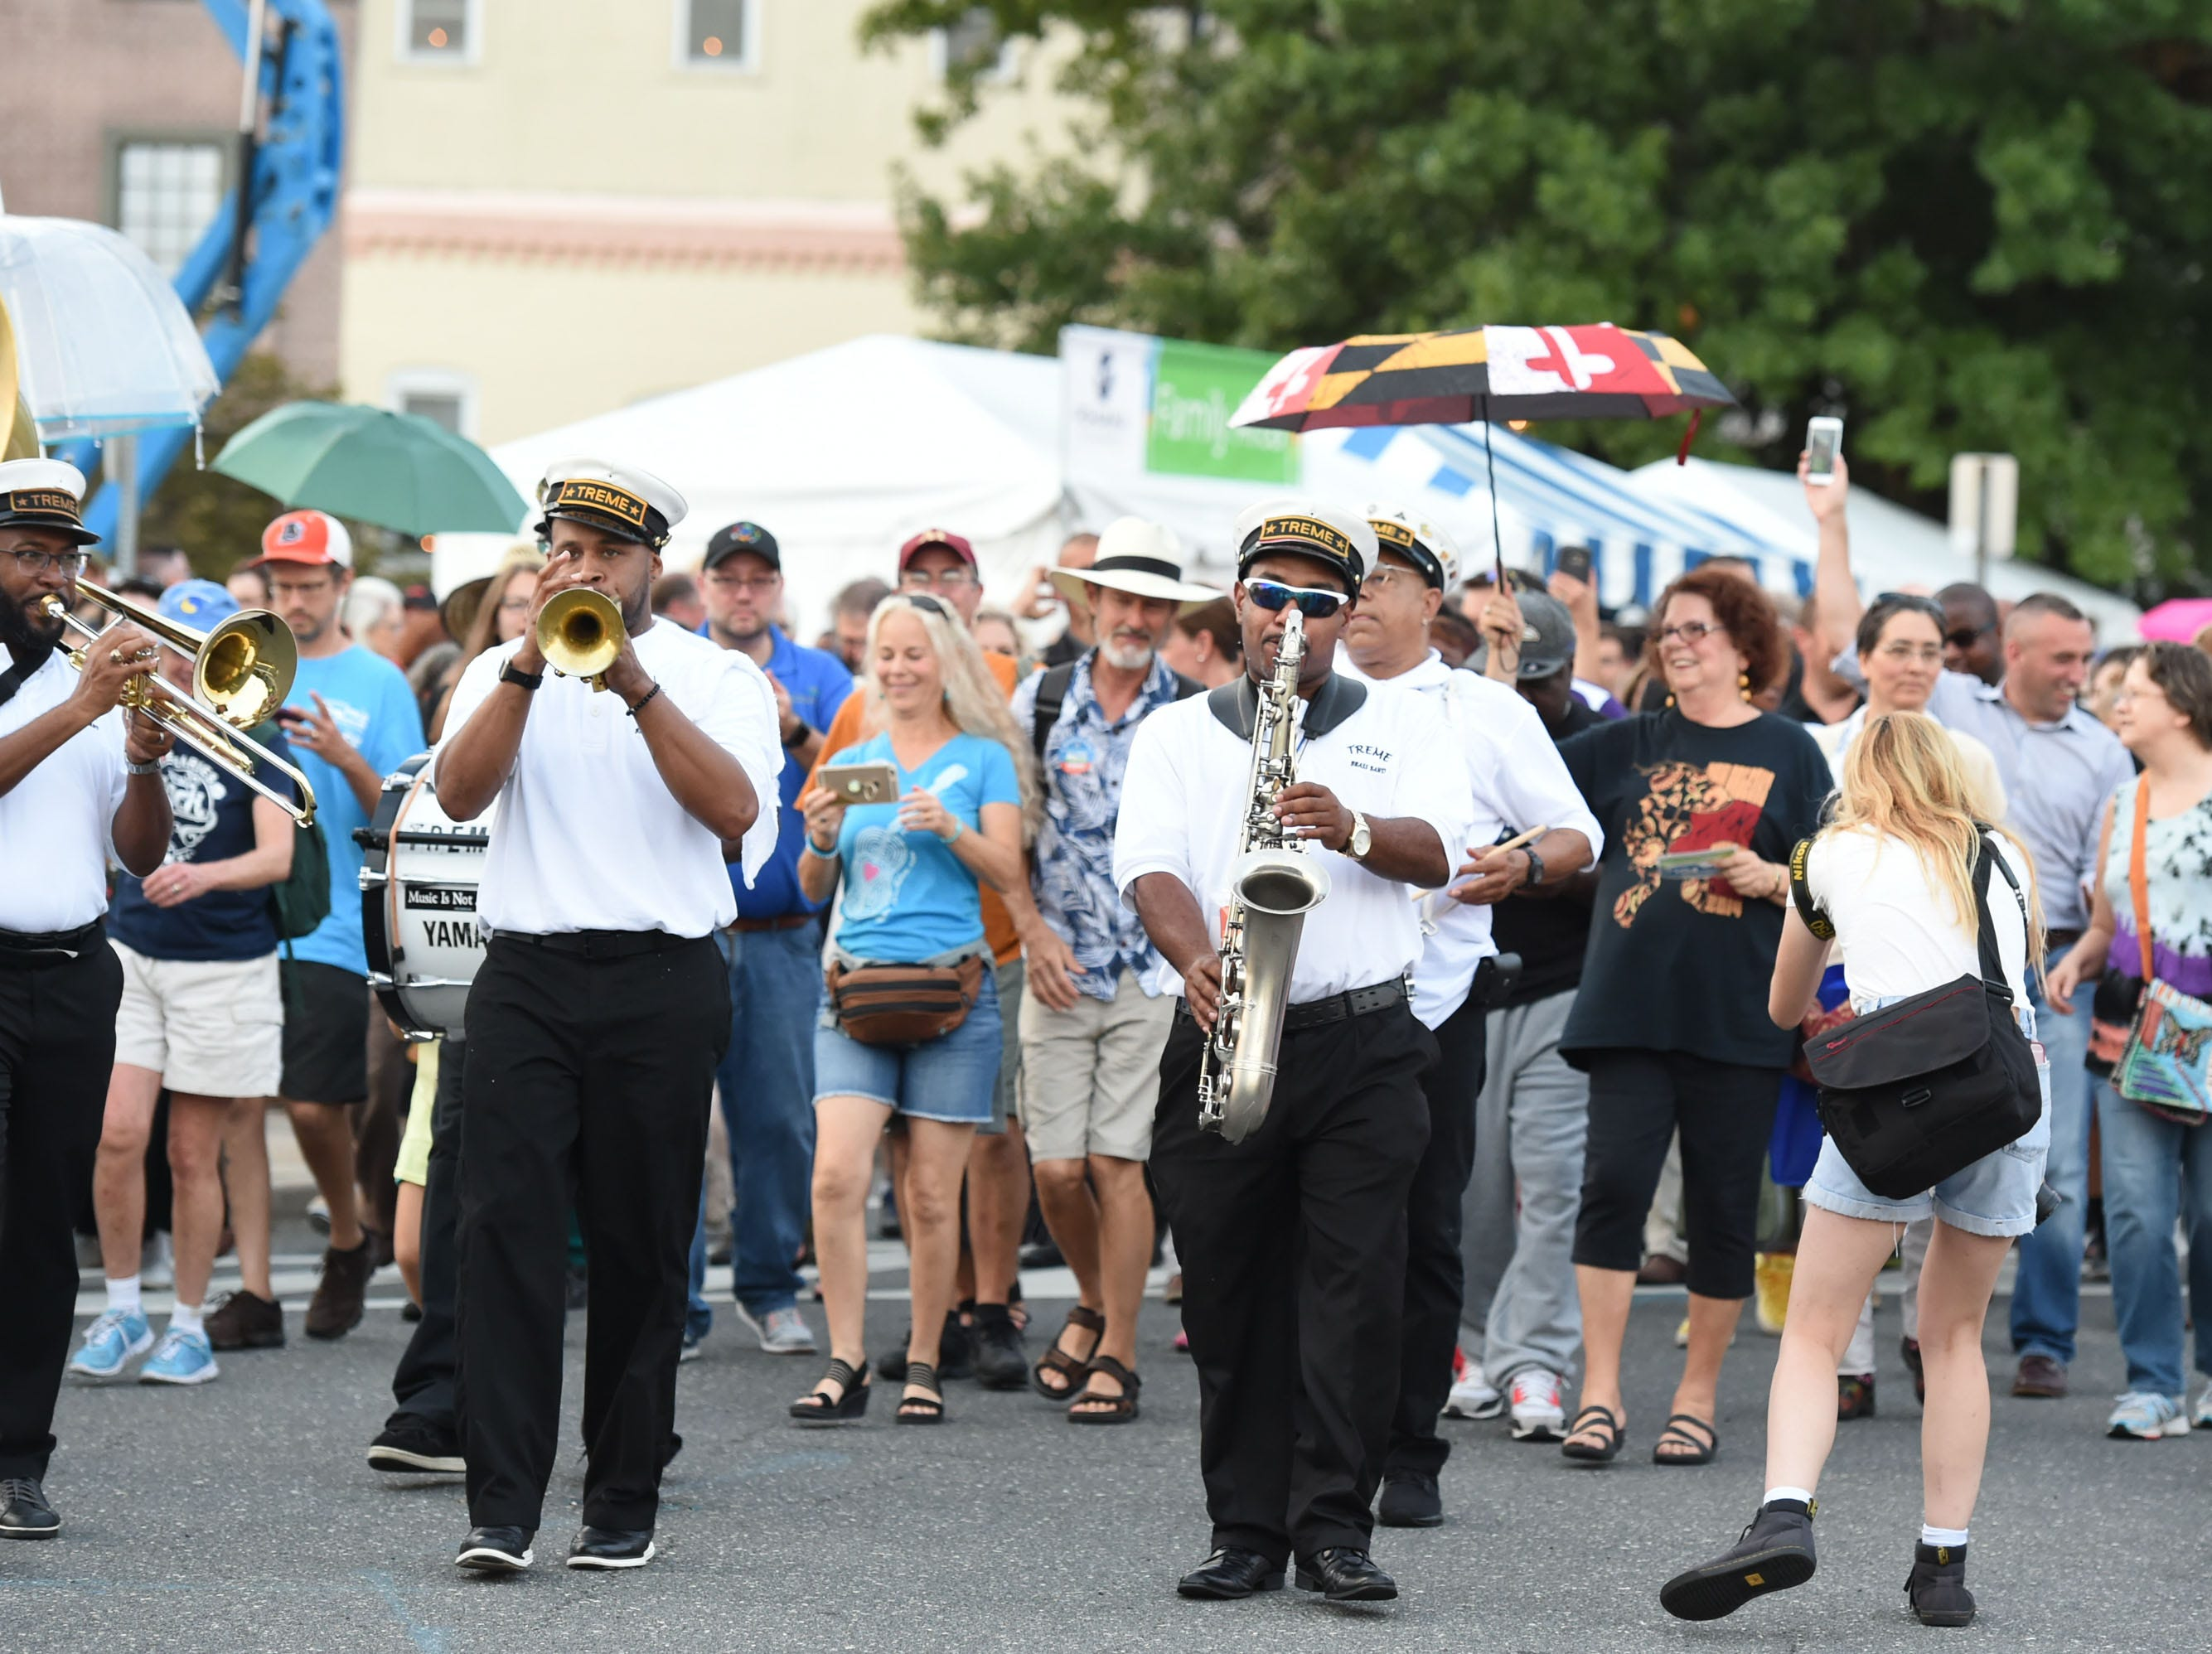 The Treme Brass Band parades down South Division Street during the kick off of the 78th National Folk Festival on Friday, Sept. 7, 2018.